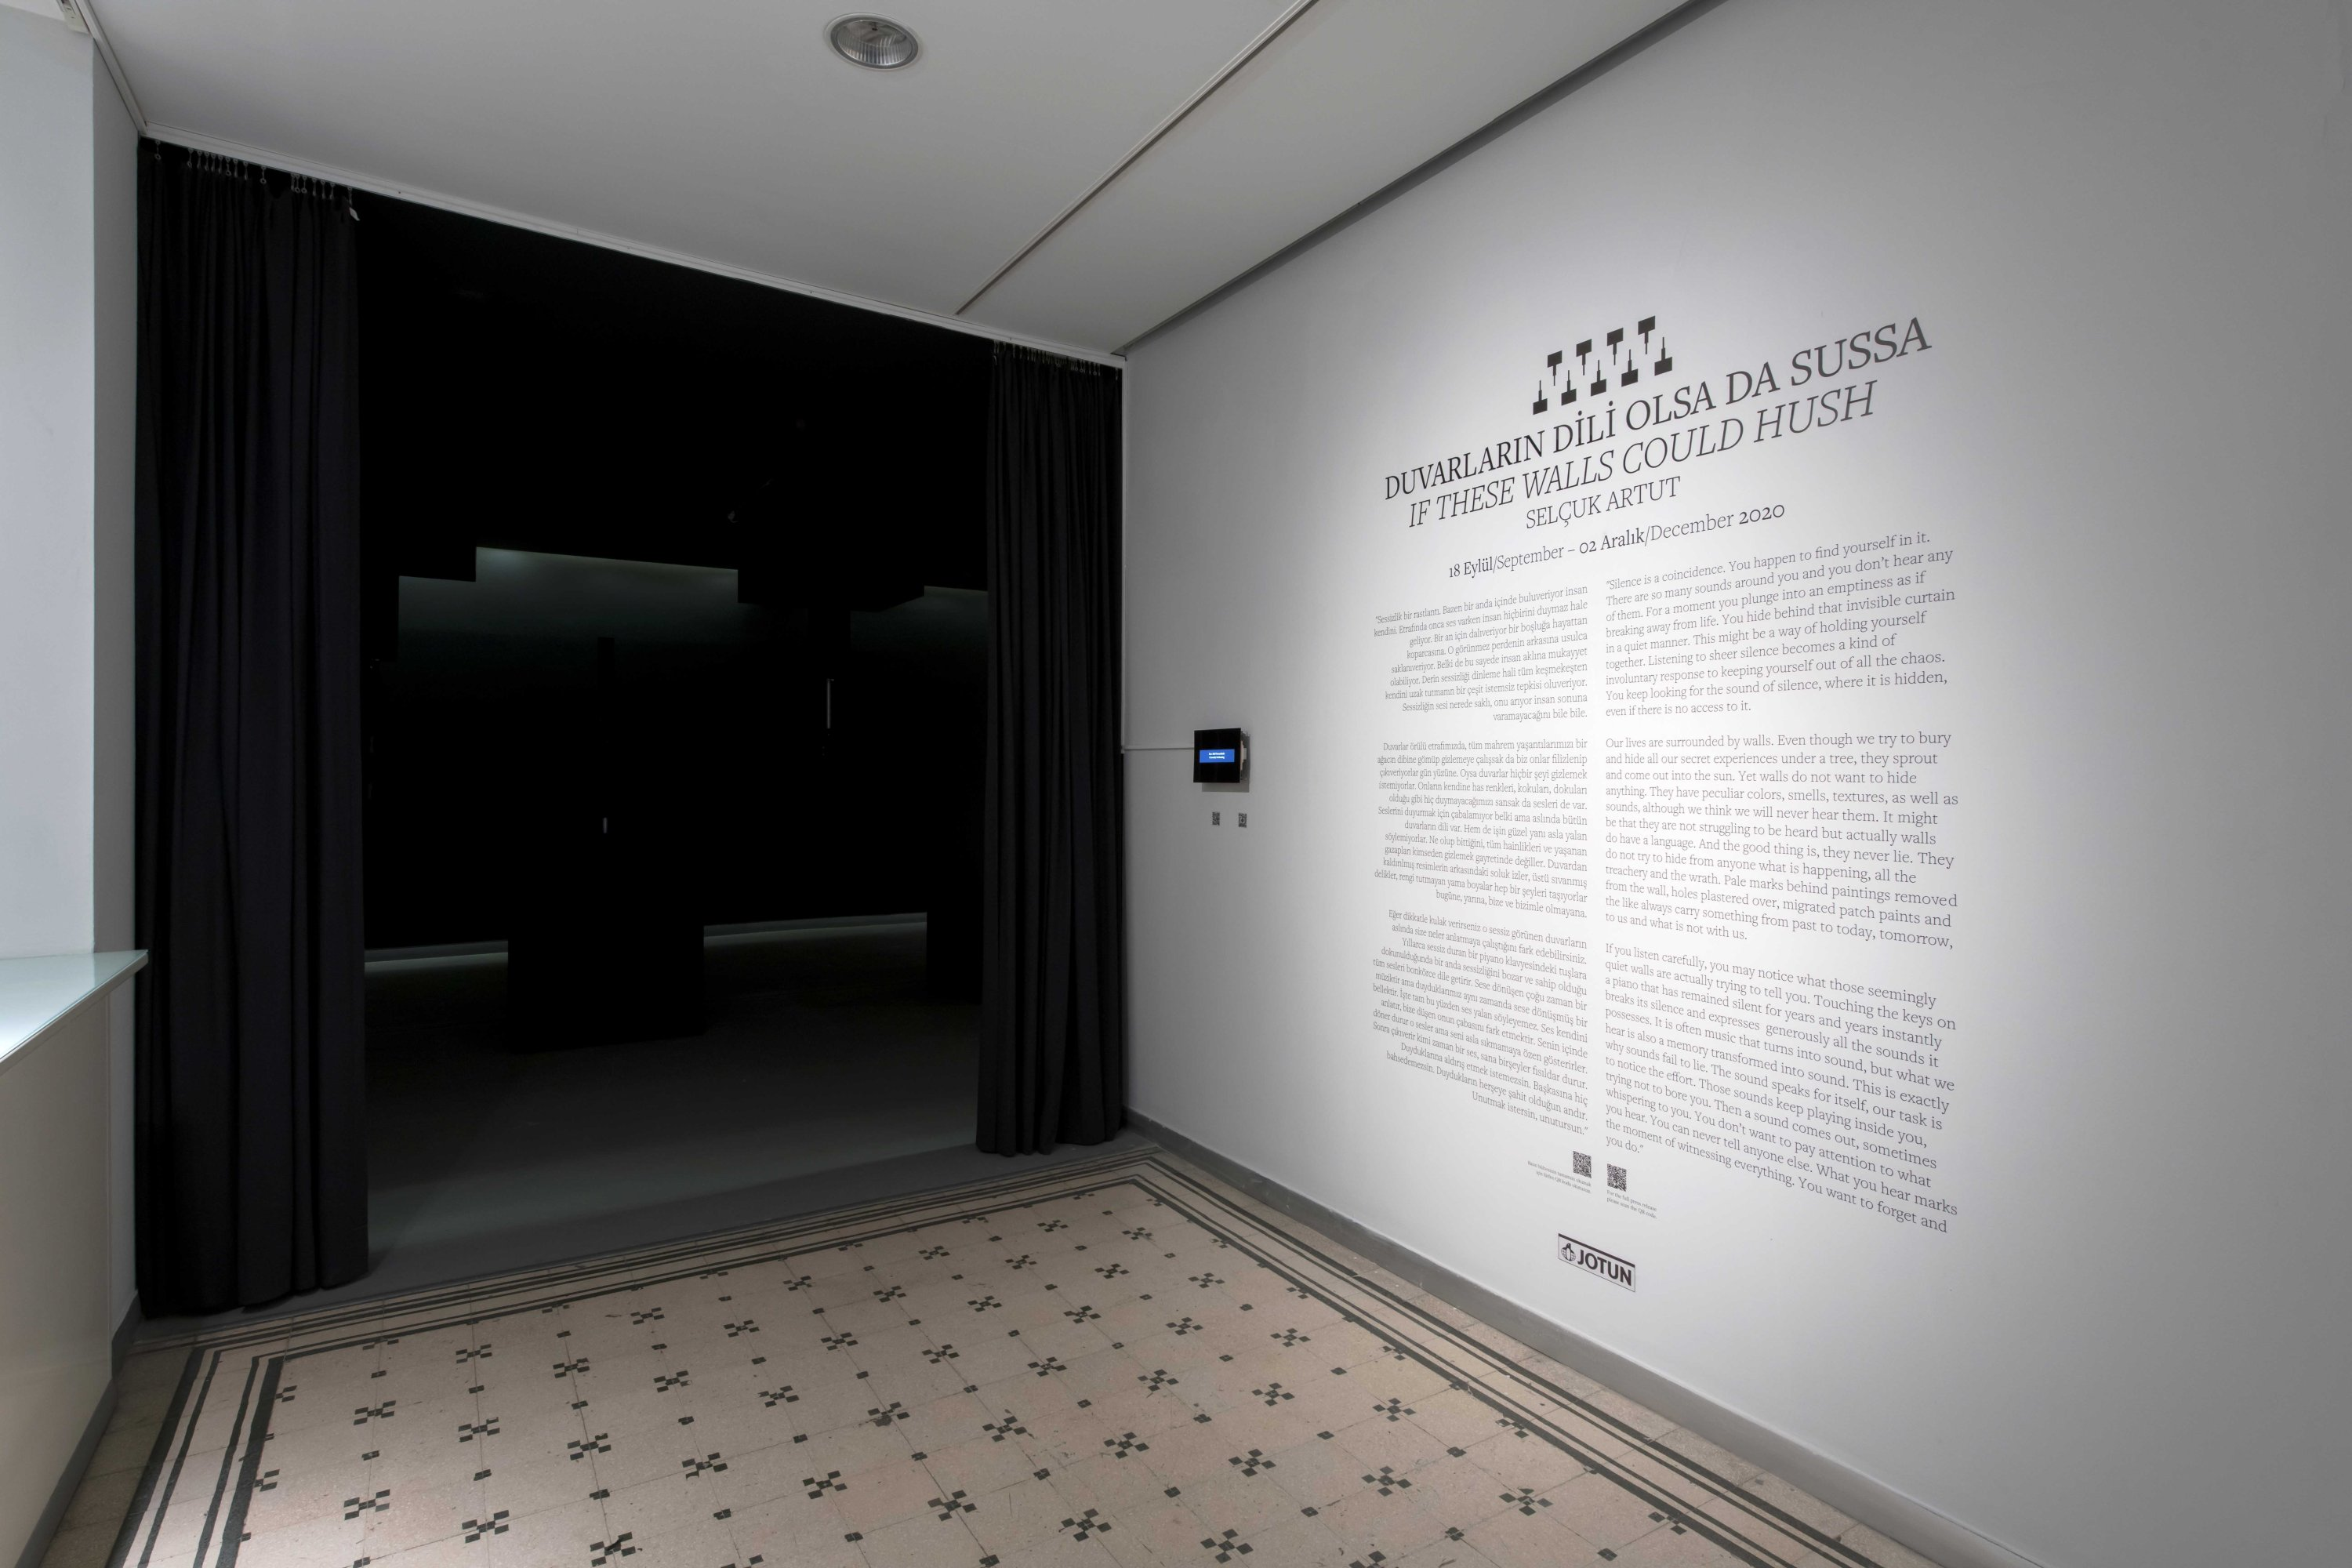 The conceptual text that Selçuk Artut prepared to accompany his